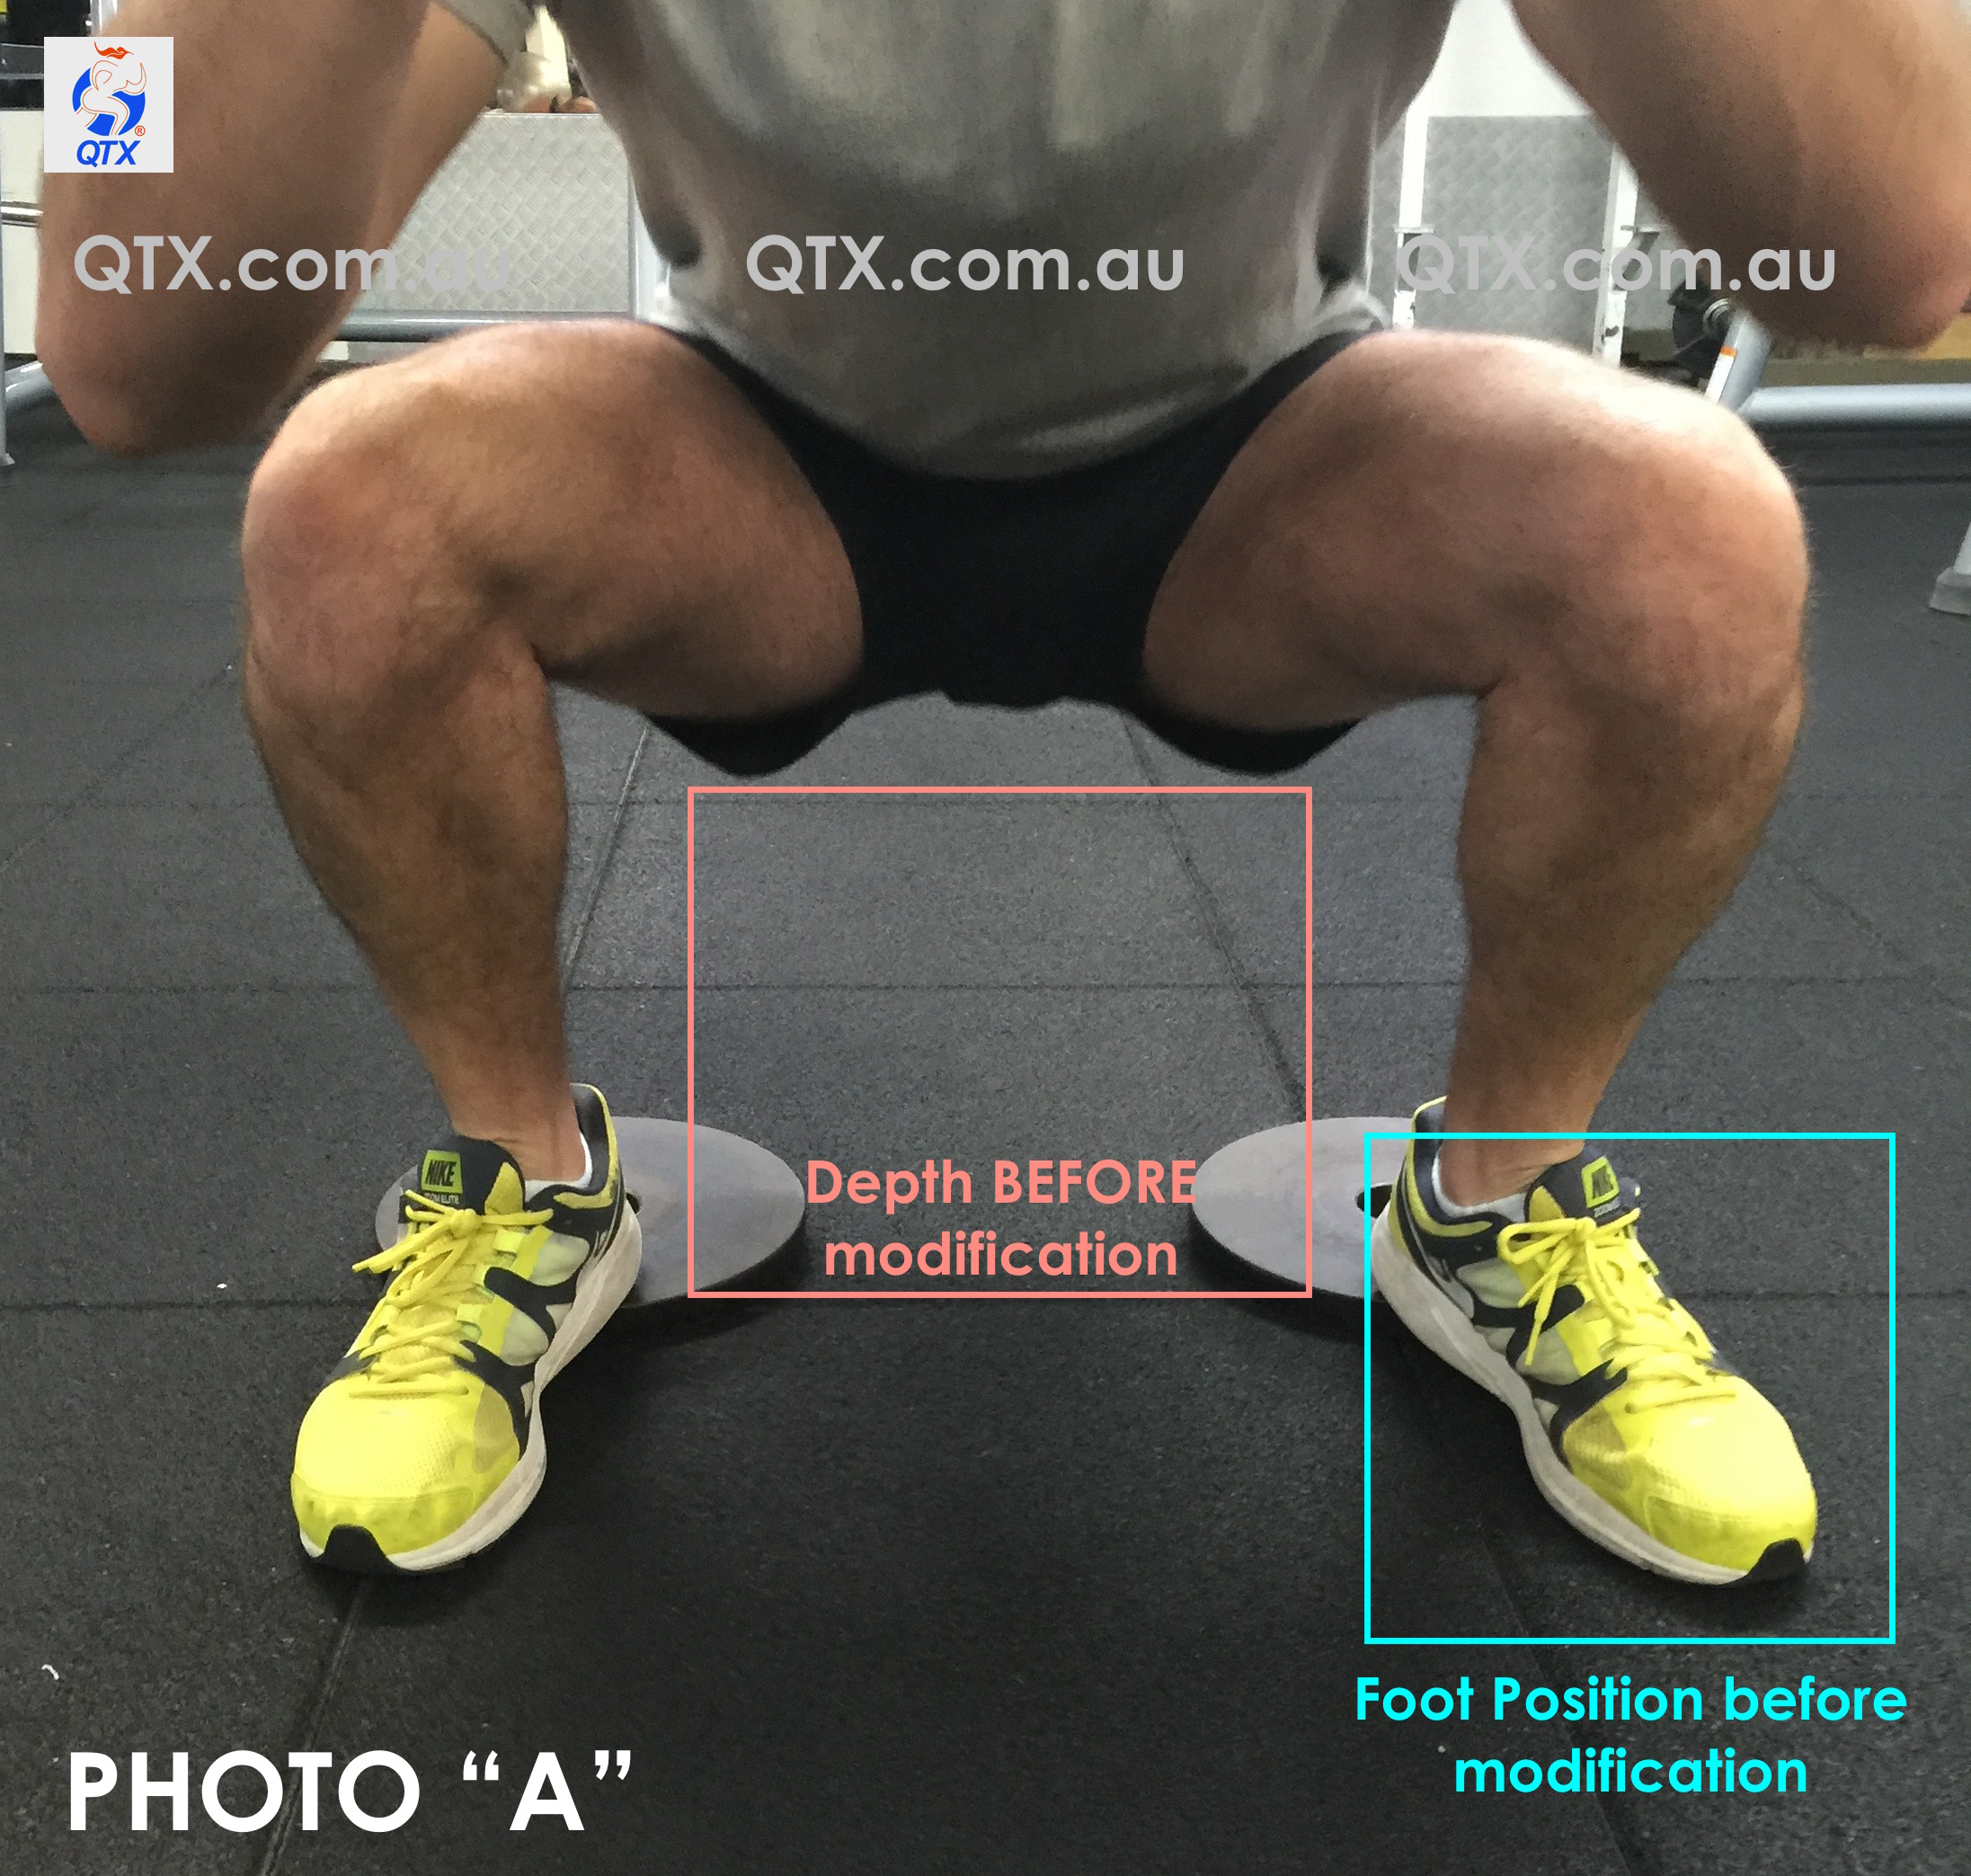 Above, A client is trying to achieve his deepest squat while keeping the natural curvature of his spine as neutral as possible. Squatting any lower than that would provoke a wink or posterior tilt of his pelvis and ache in his left knee. Both issues can be highly dangerous if the movement is intended with a barbell or any other sort of external resistance.